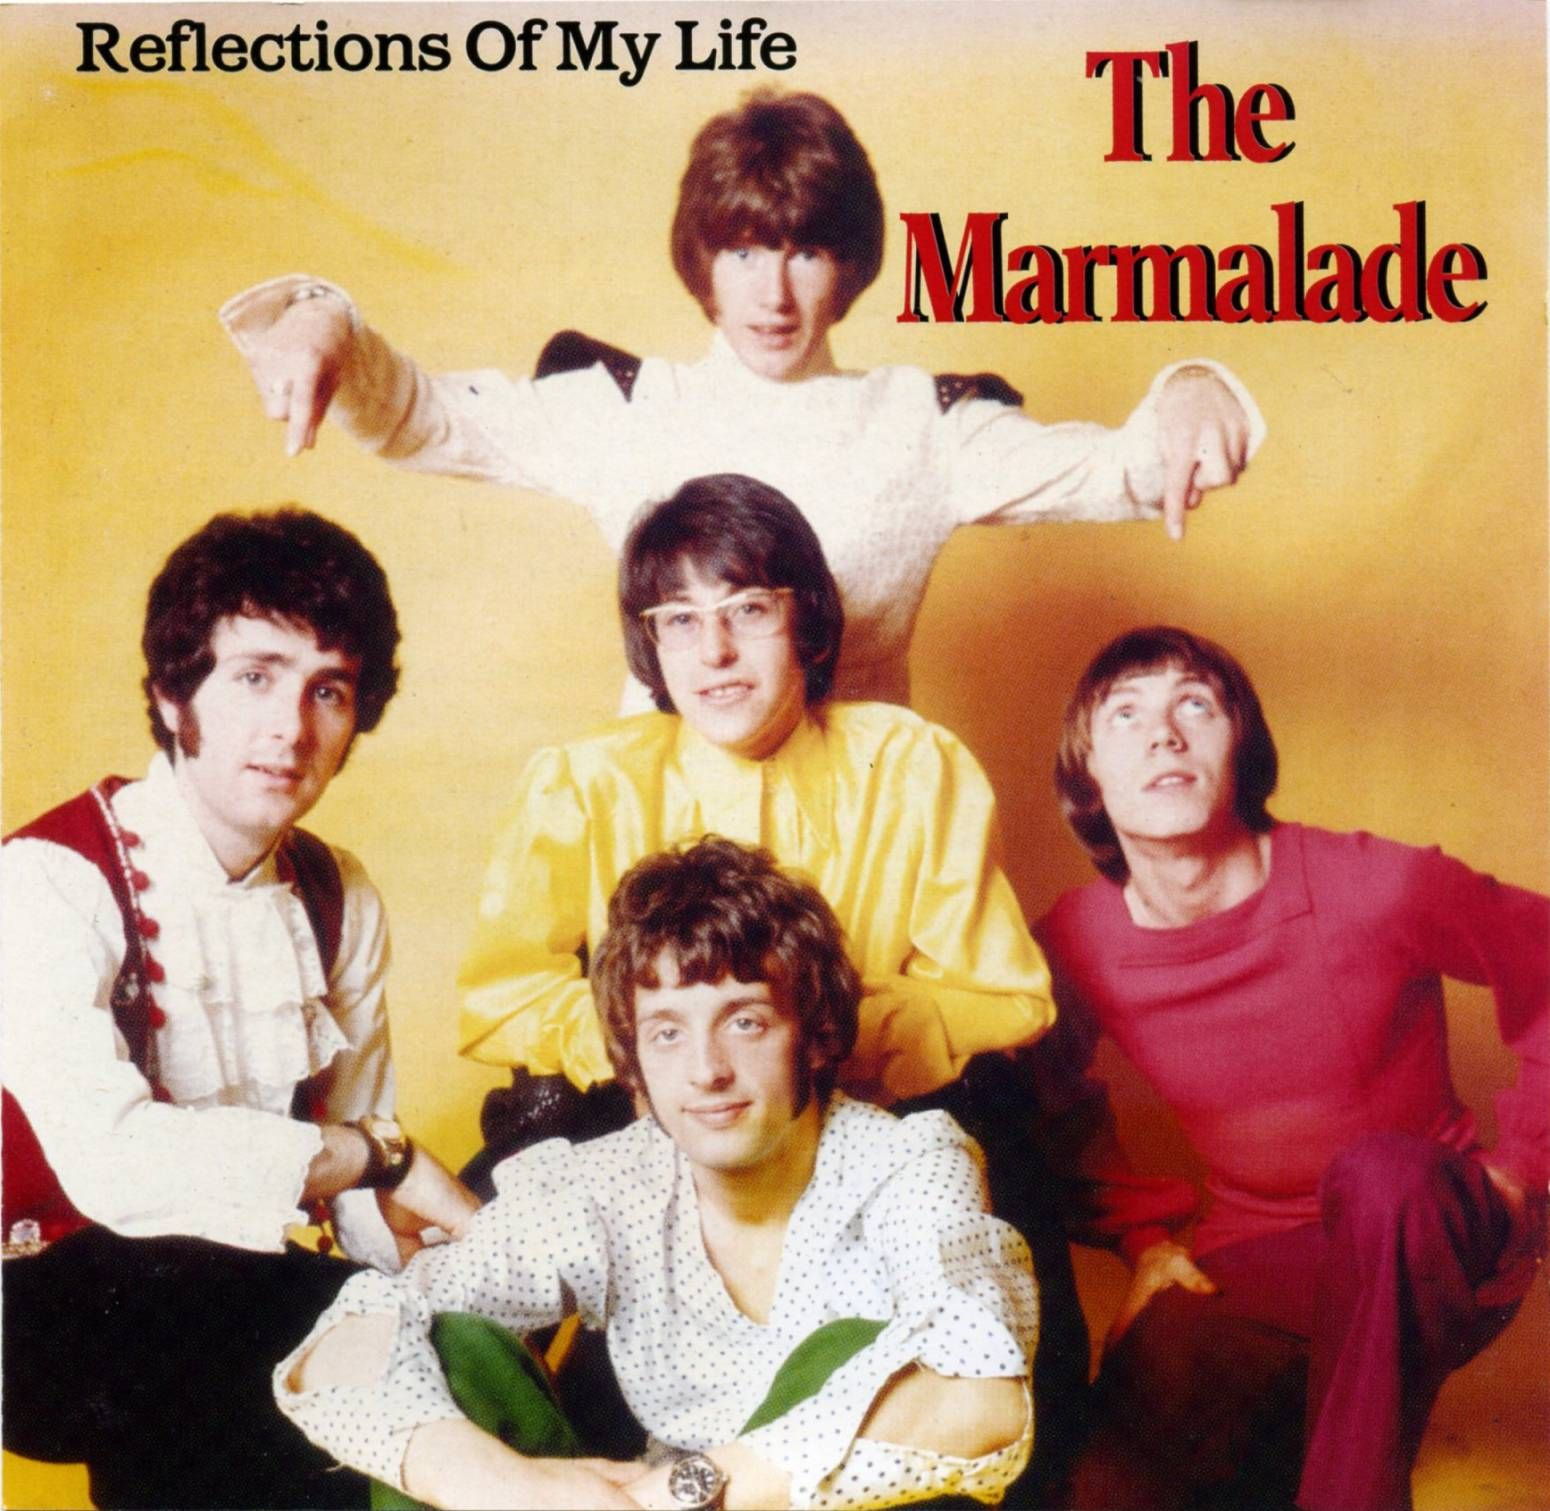 reflections of my life Lyrics to 'reflections of my life' by marmalade the changing of sunlight to moonlight / reflections of my life, oh how they fill my eyes / the greetings of people in trouble discovered 288586 times using shazam, the music discovery app.